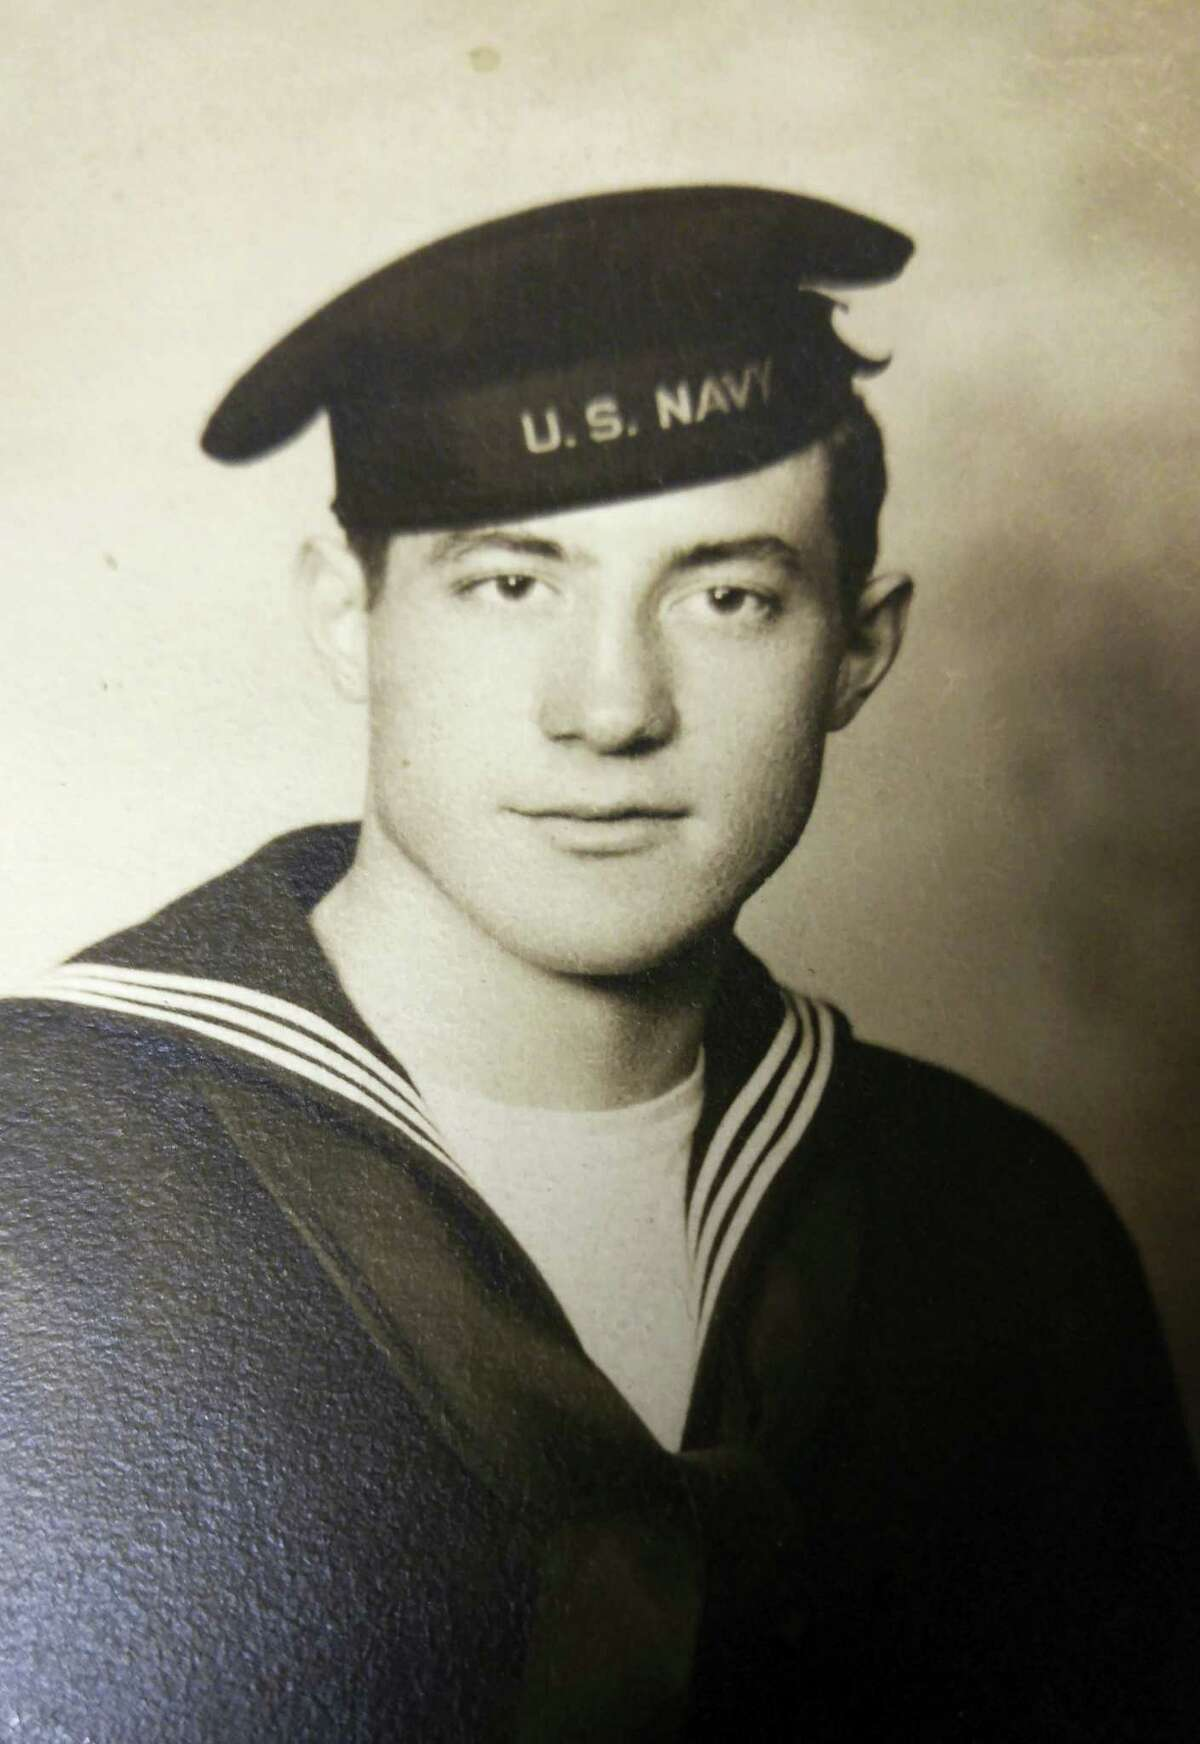 This circa 1942 photo provided by James Lafayette shows Fireman 1st Class Richard Duffy. Duffy is among the American sailors still listed as missing after the U.S. Navy destroyer USS Turner sank near the entrance to New York Harbor during World War II. The Pentagon said it will try to solve the mystery of whether dozens of U.S. sailors listed were actually recovered and buried all along as unknowns in a New York cemetery.